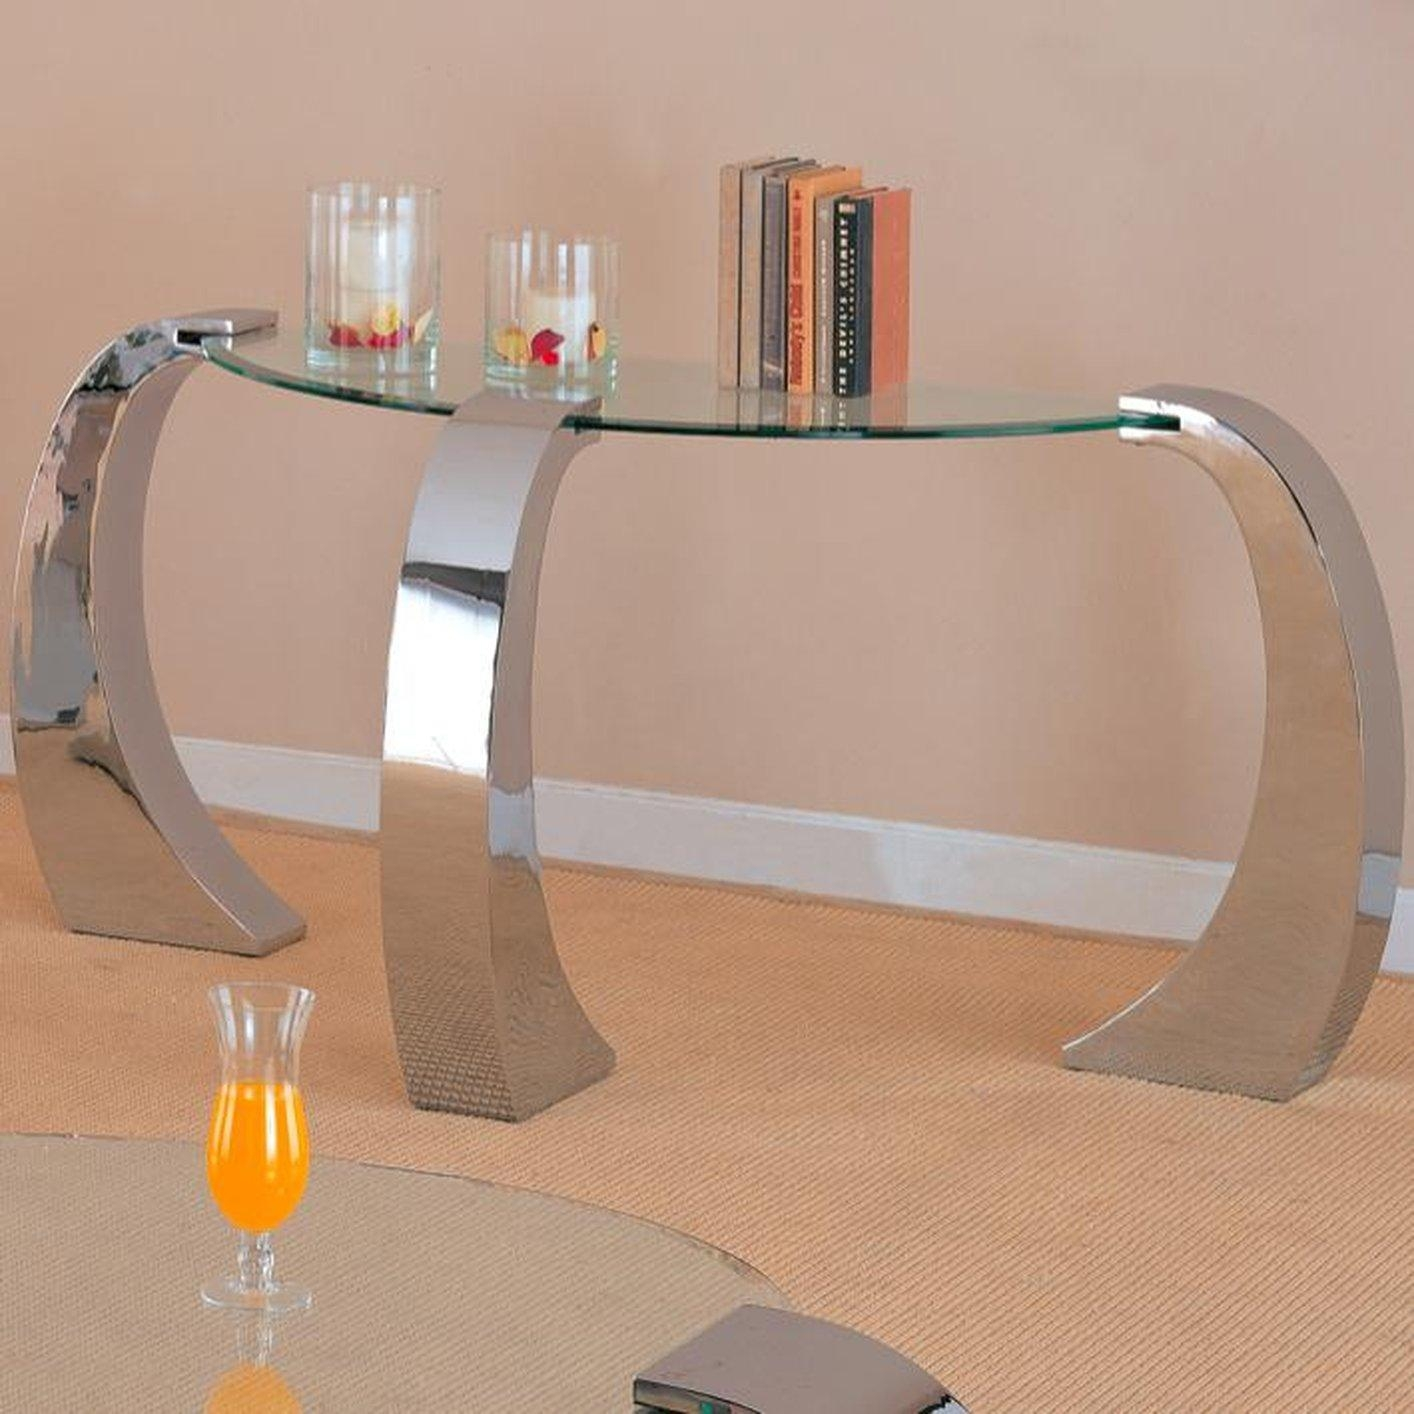 Sofa Table Design: Glass Sofa Tables Contemporary Astounding Glam Inside Metal Glass Sofa Tables (Image 18 of 22)